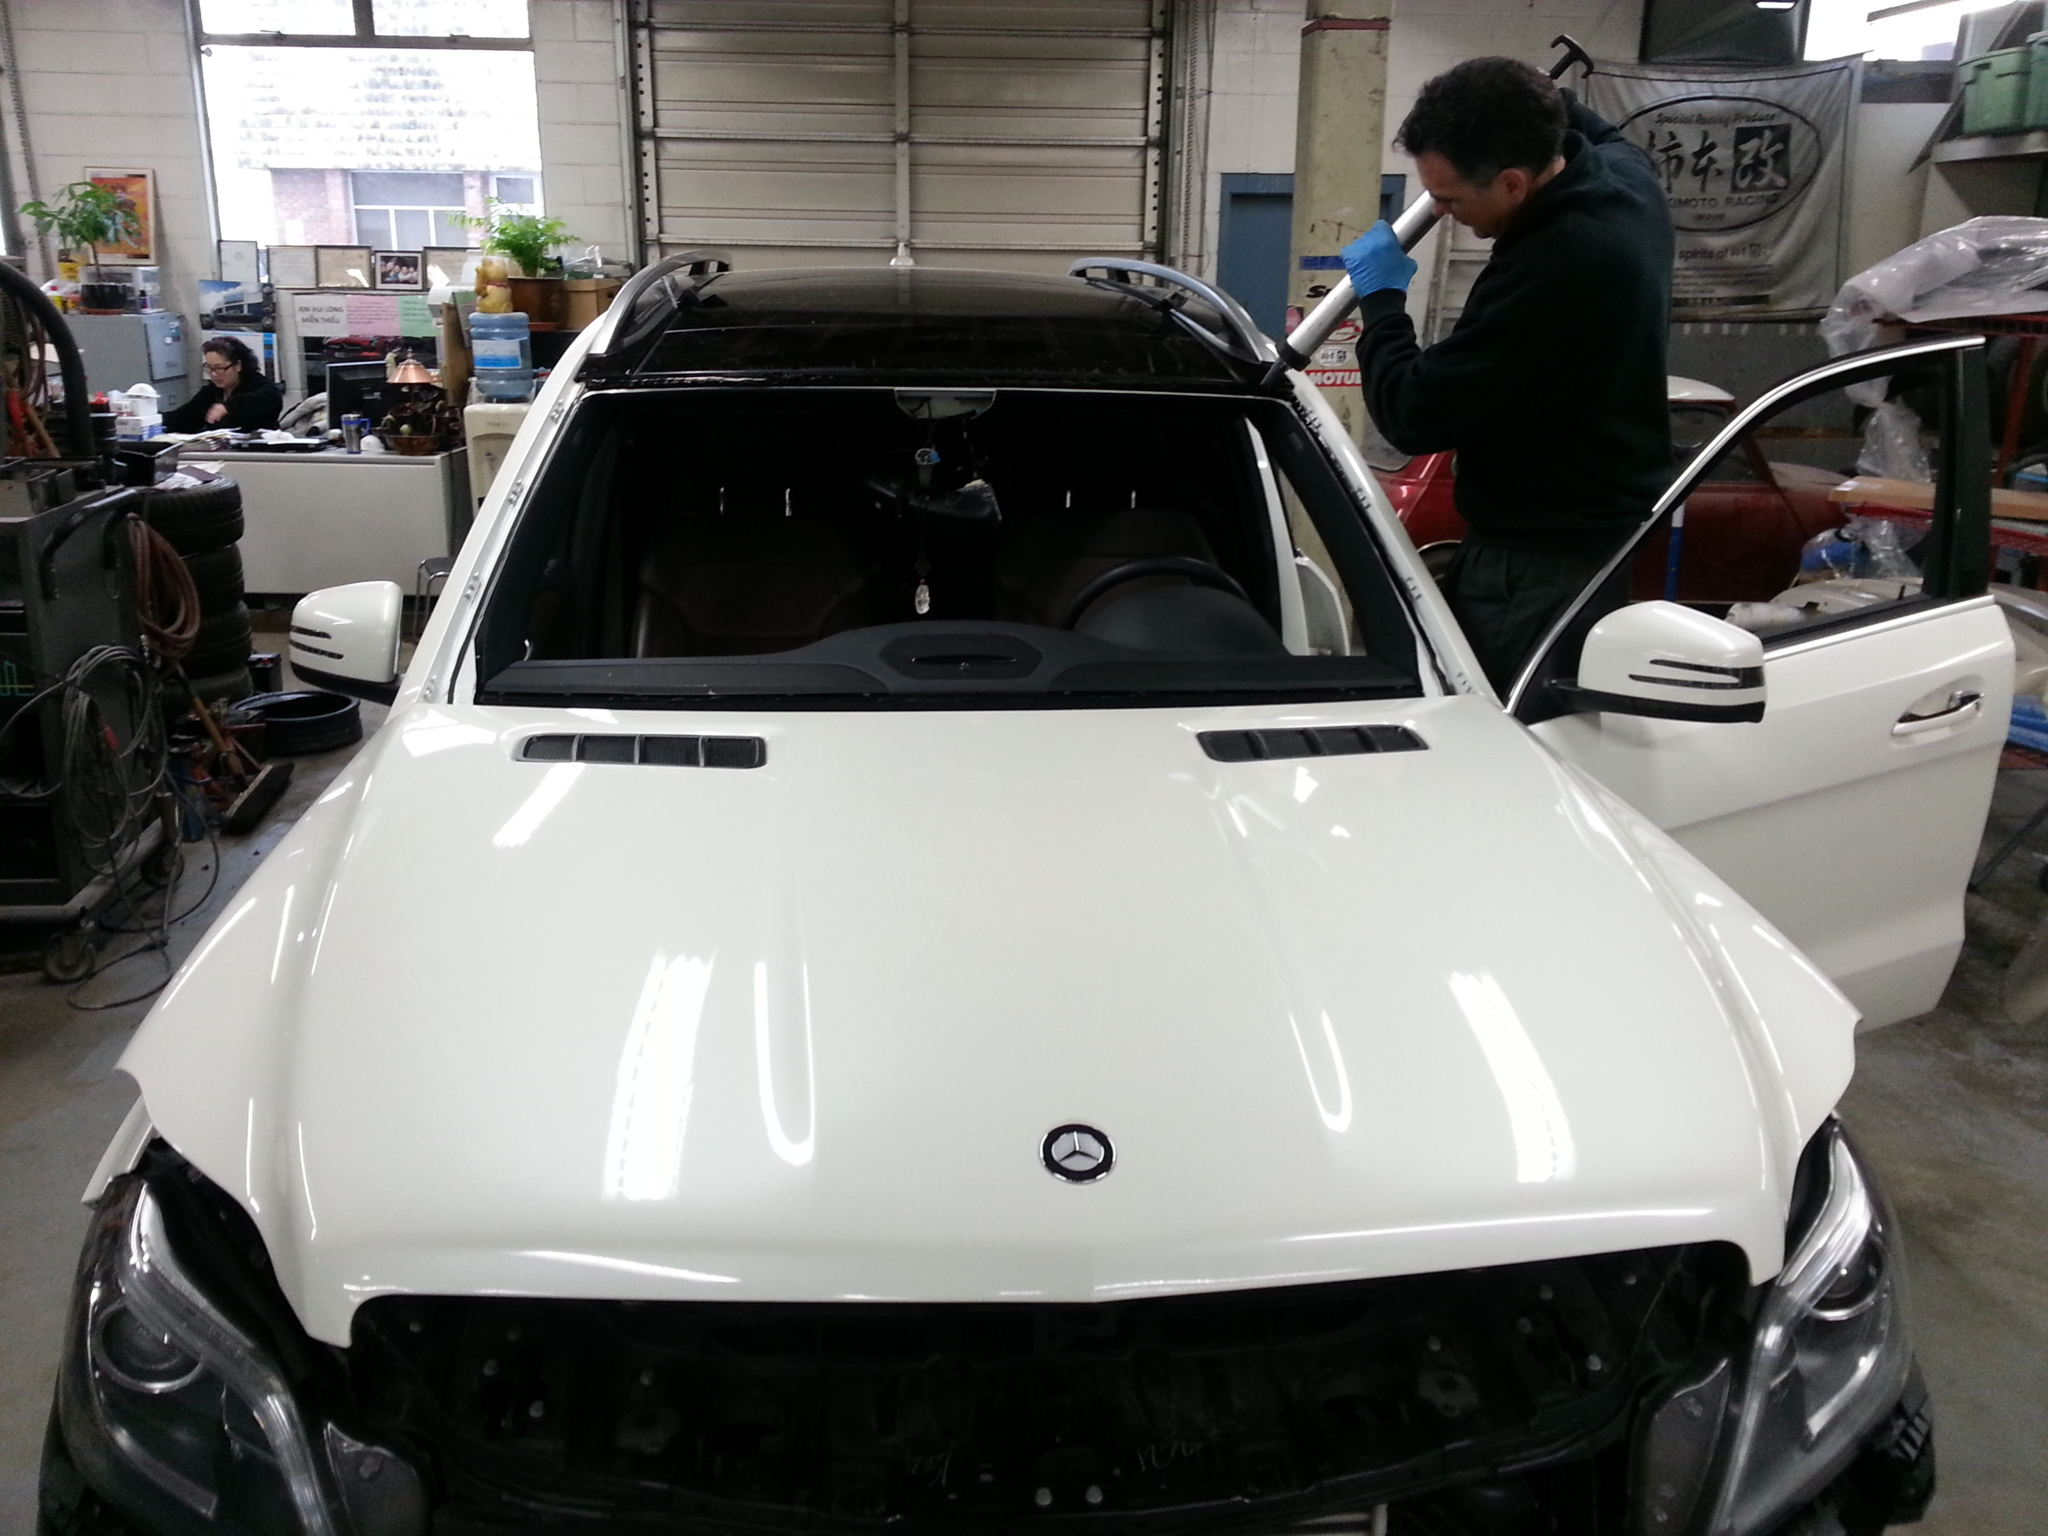 Penney Auto Body in Vancouver: Penney Auto Body offers windshield replacement by trained technicians.